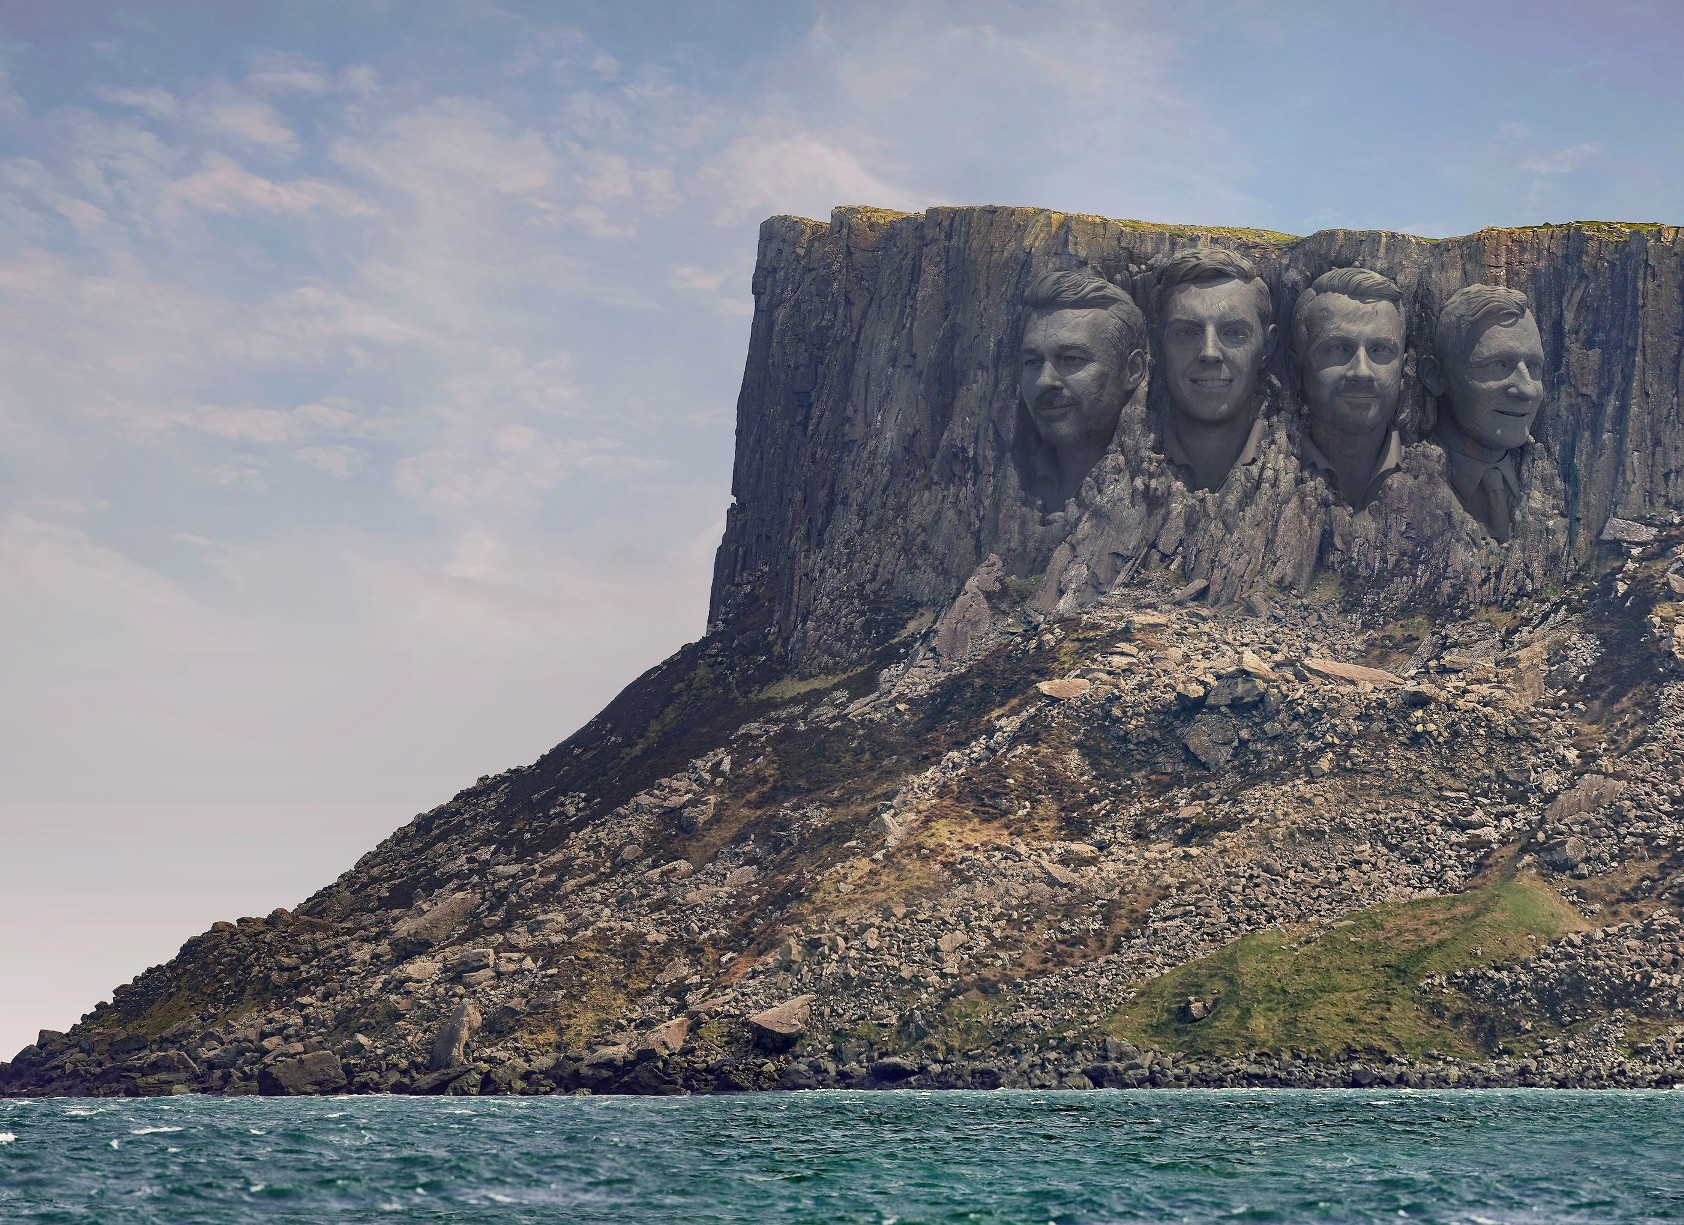 MOUNT RUSHMORE IN NORTHERN IRELAND? -